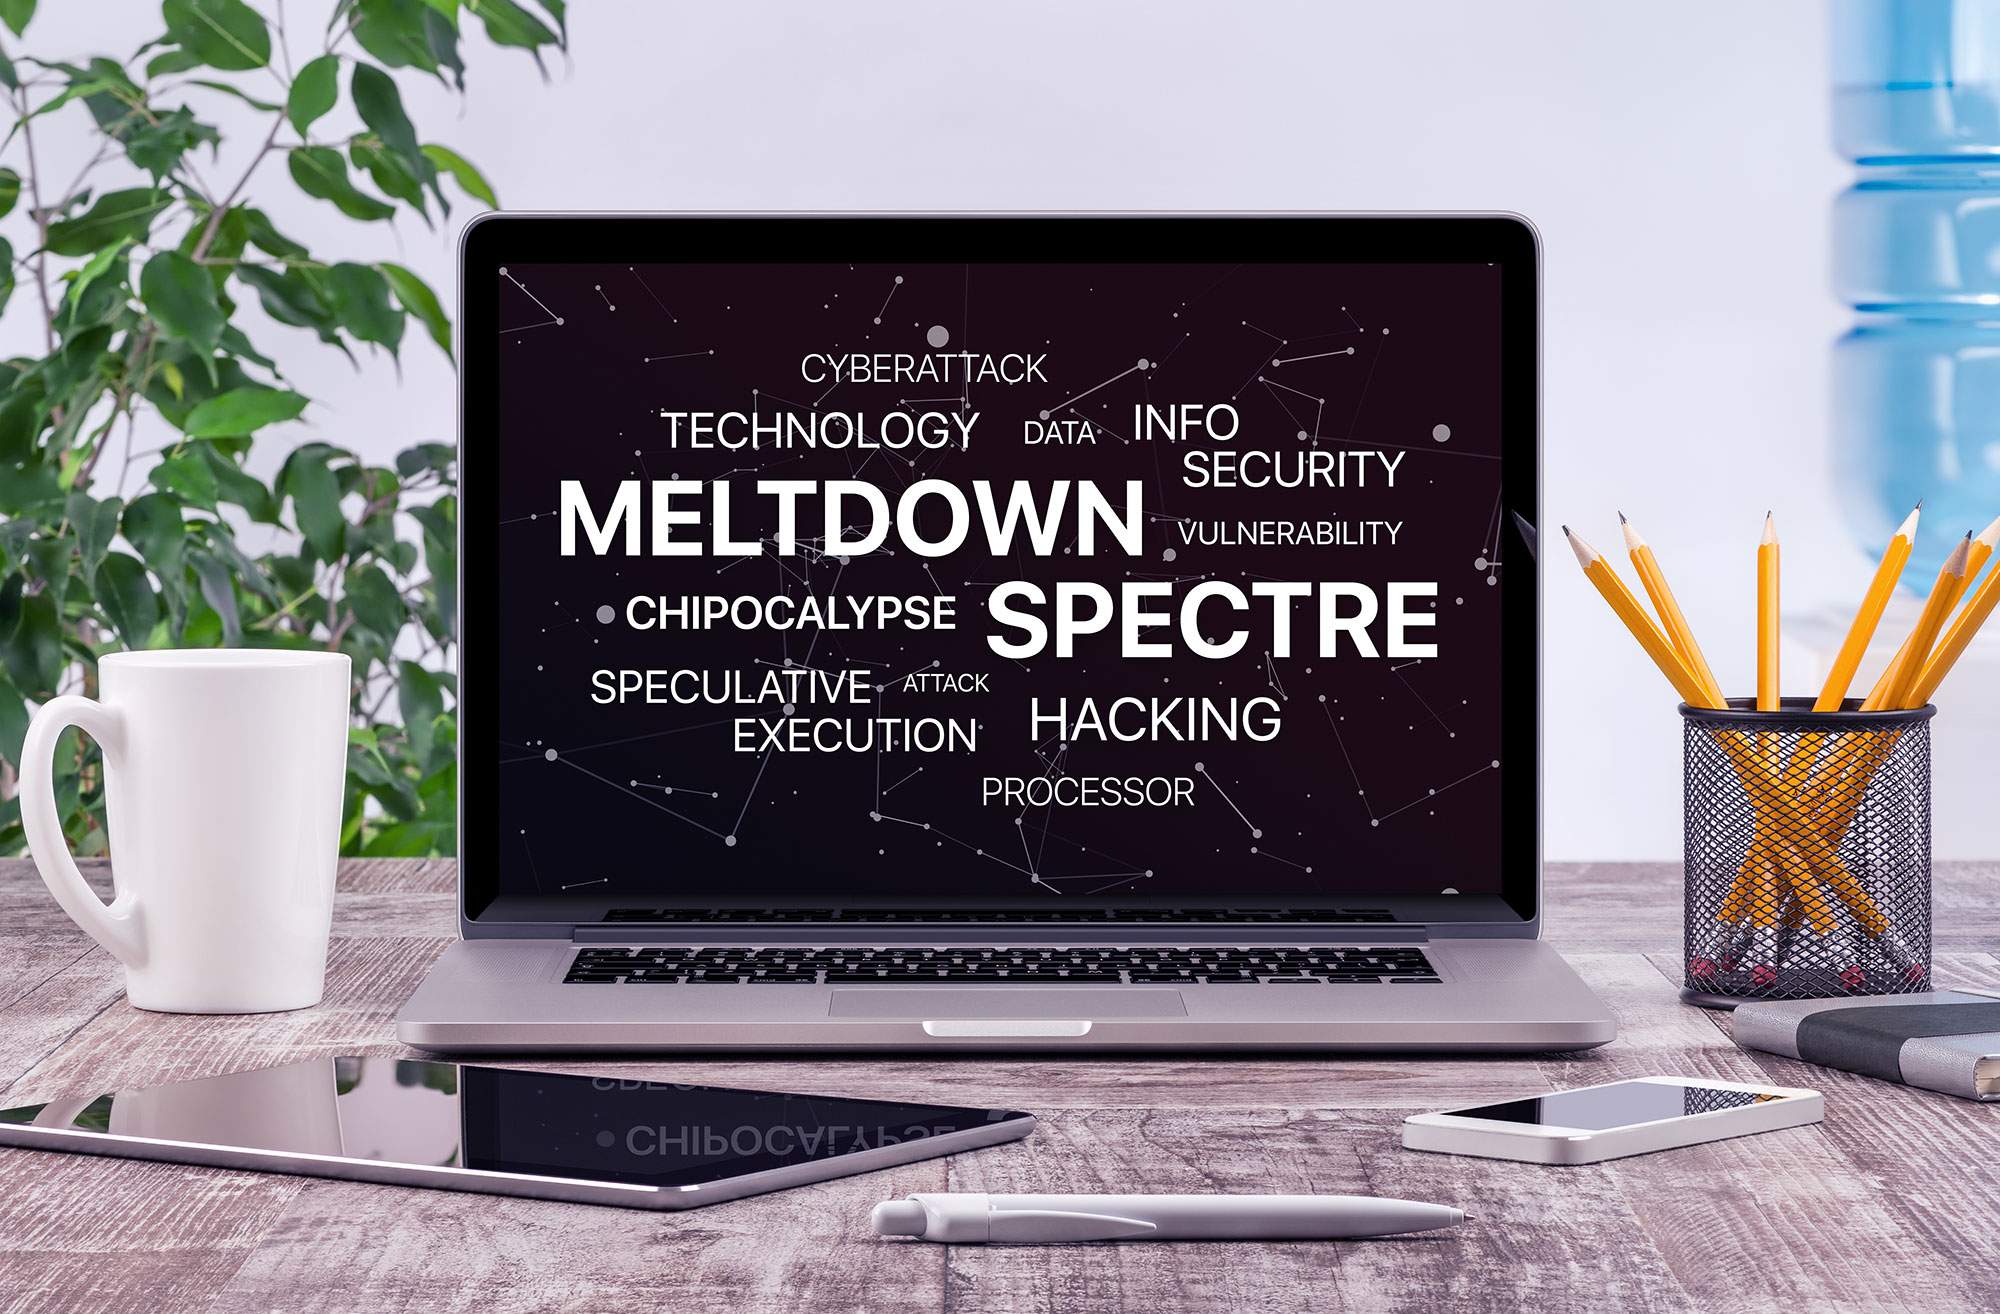 Keeping up with the Spectre and Meltdown vulnerabilities - Featured Image